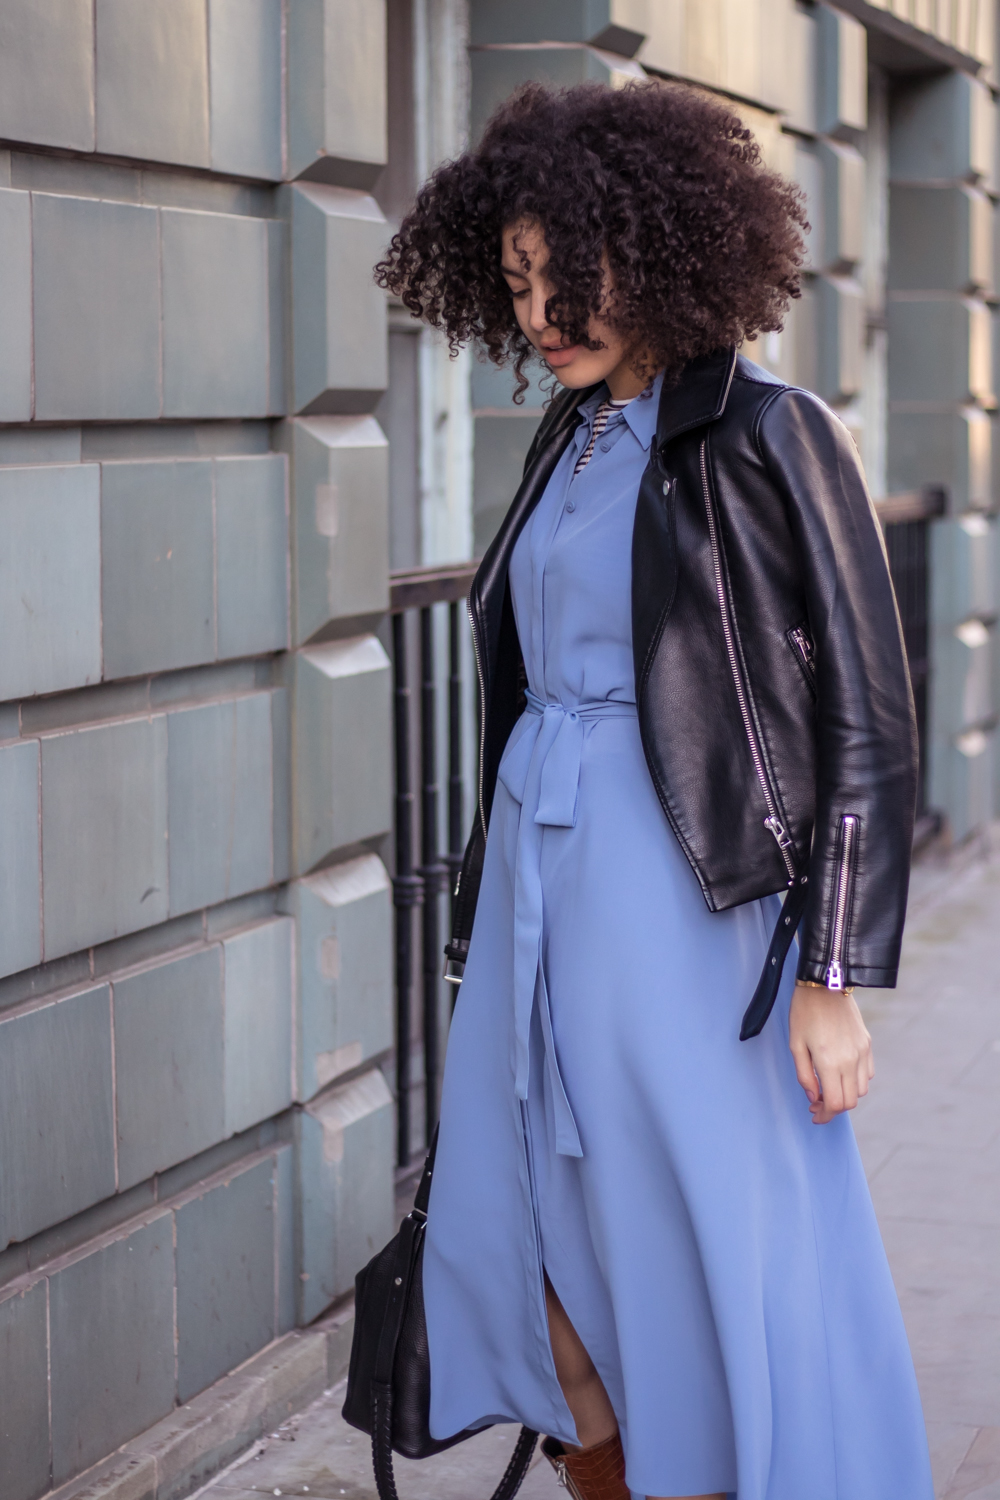 Cornflower blue Finery shirt dress